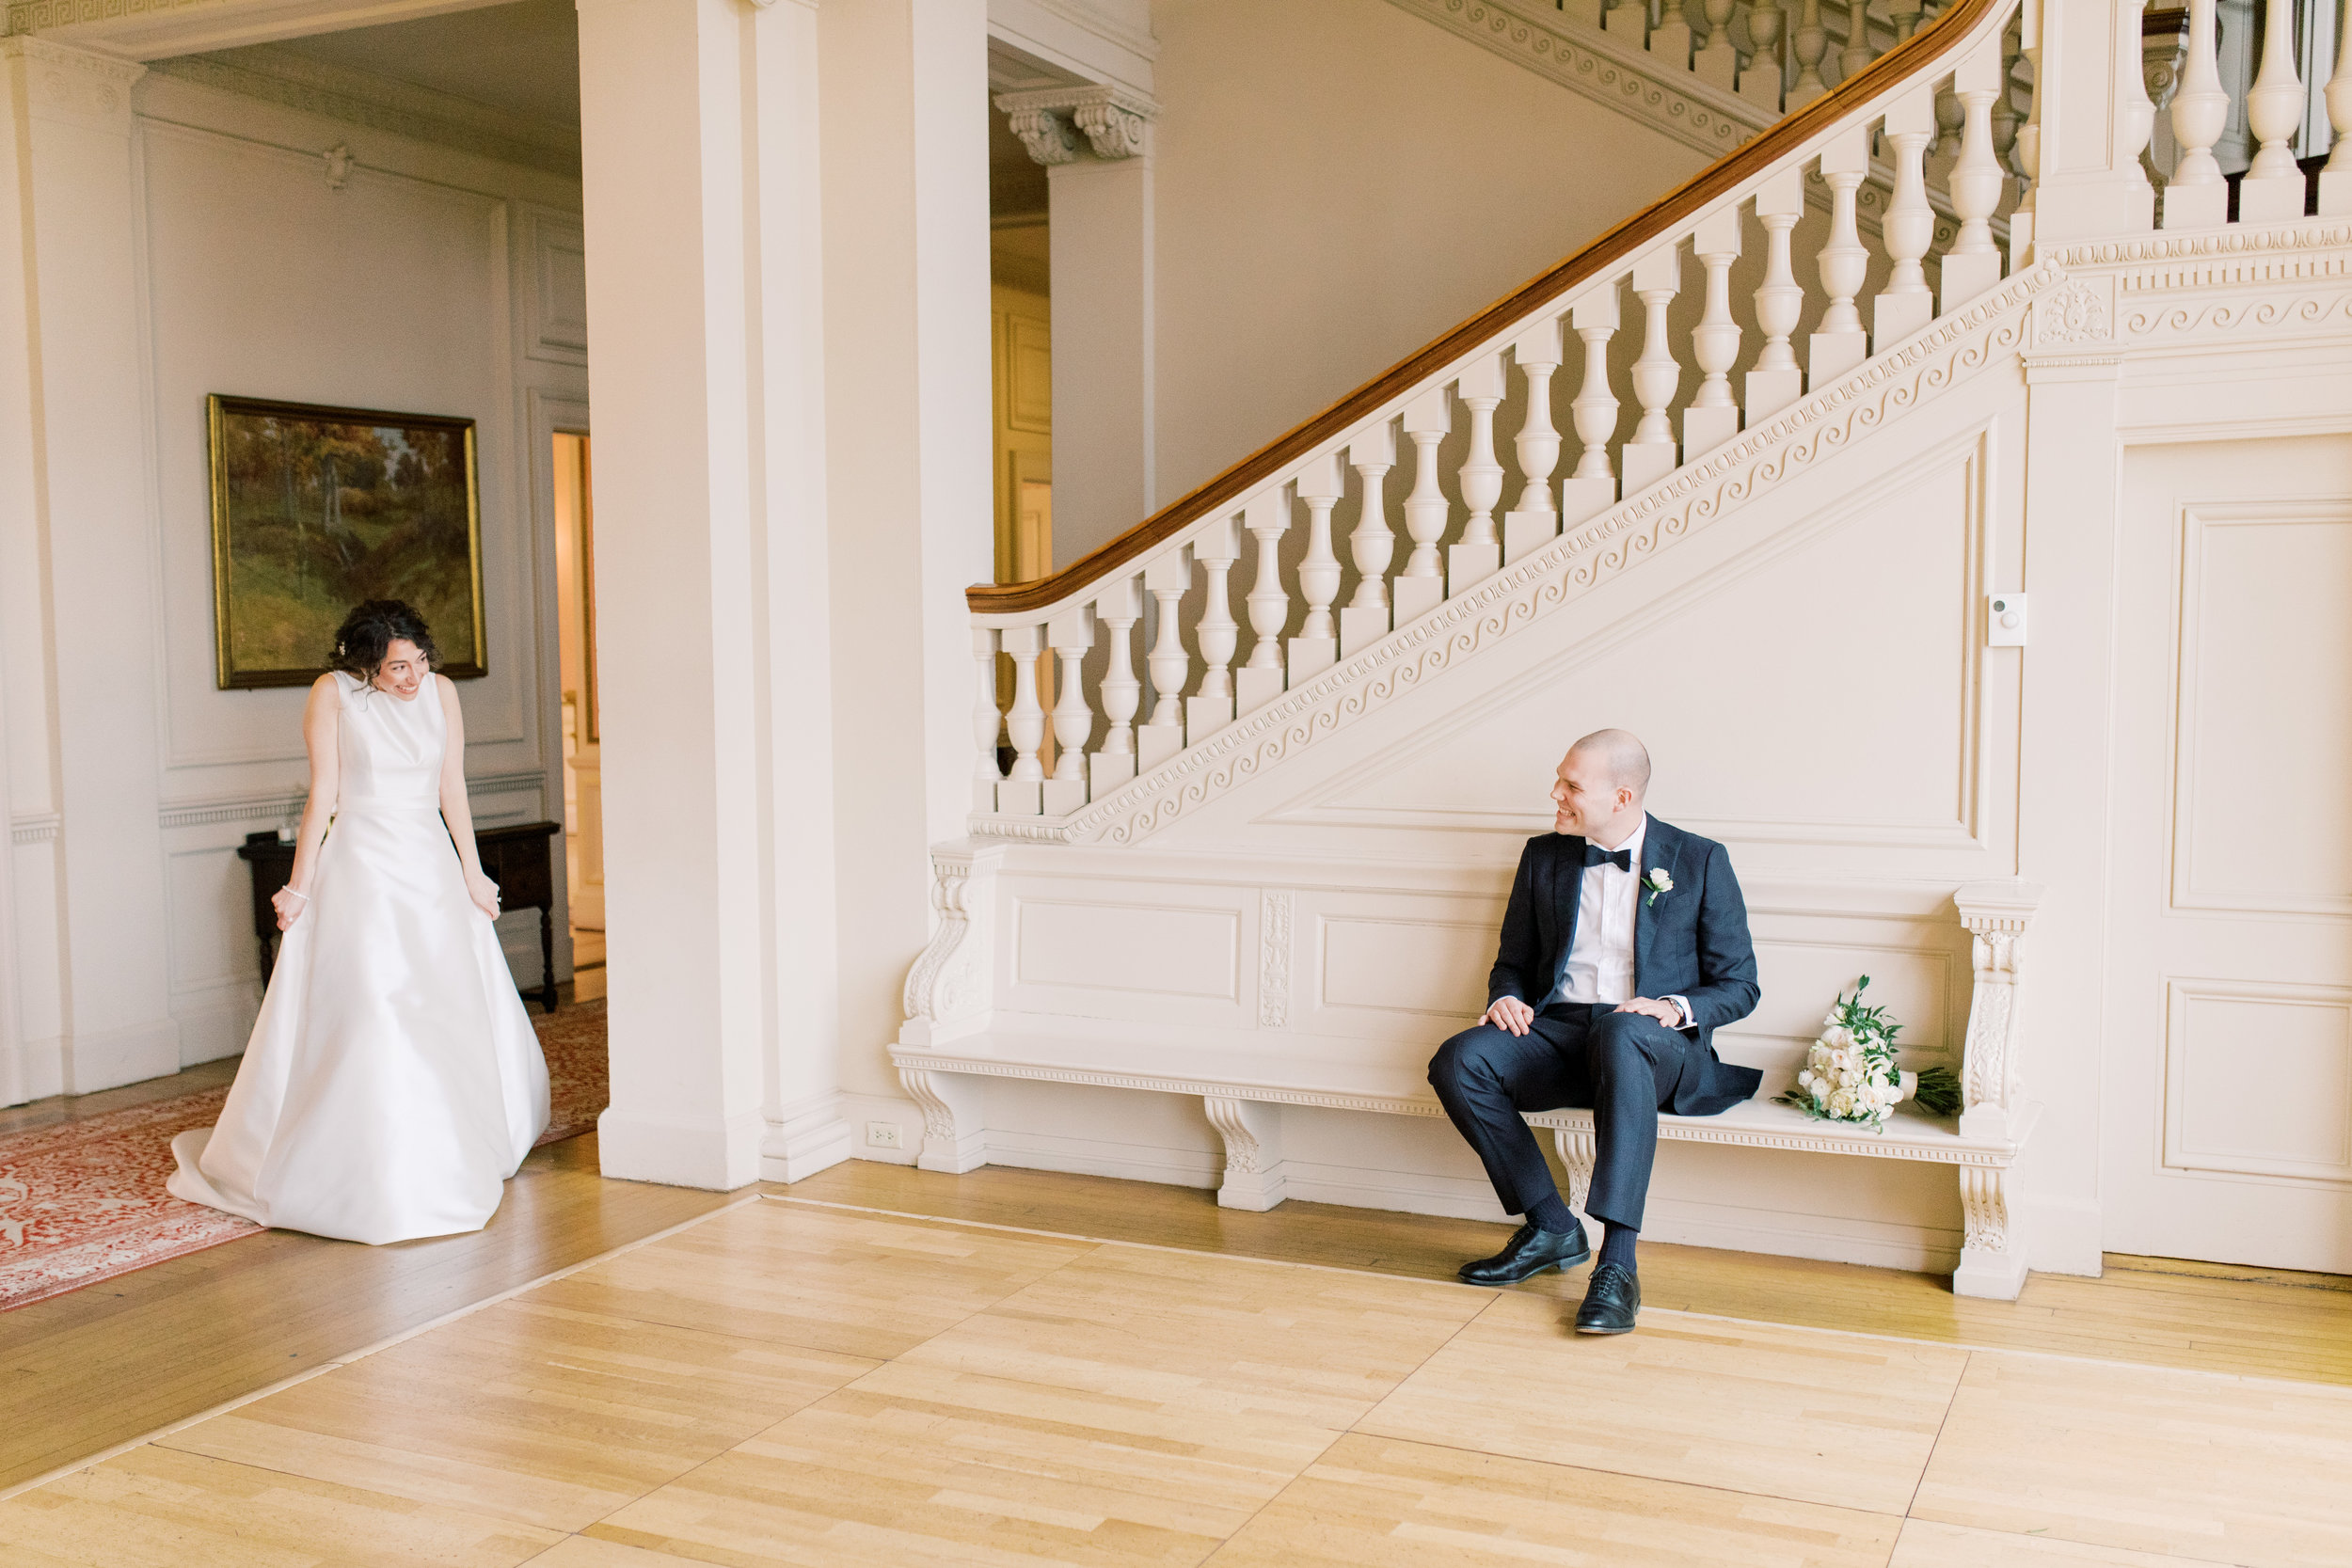 We get all the feels when our bride and grooms have their first look, just like this special moment from this romantic and classic wedding day for their french inspired green and white Cairnwood Estate wedding